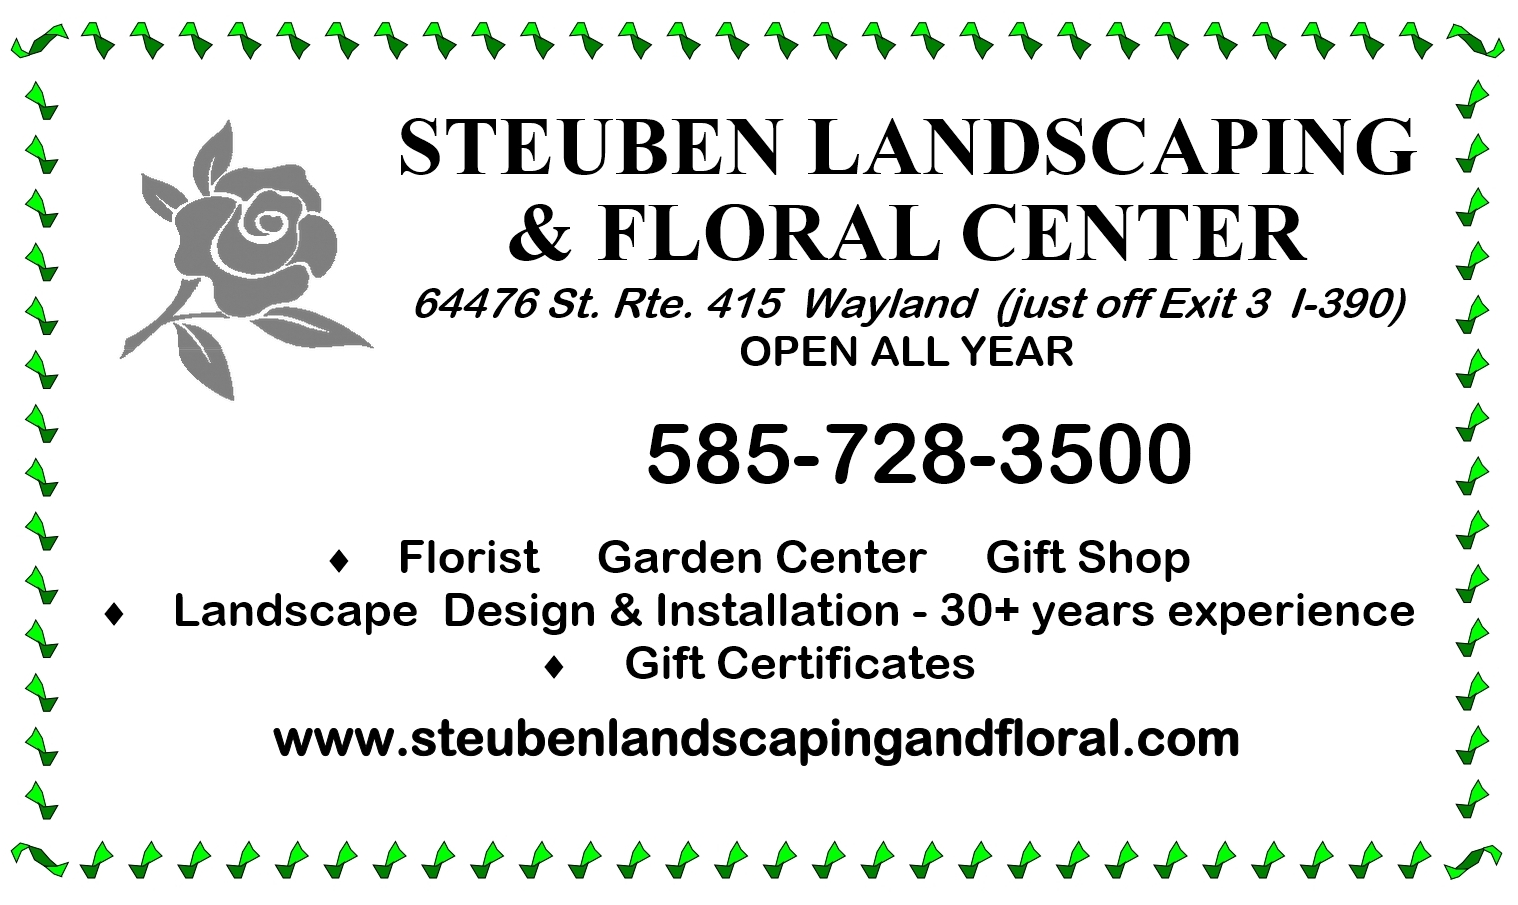 Steuben Landscaping & Floral Center, Livingston County Chamber of Commerce, Shop Local, Chamber Factor